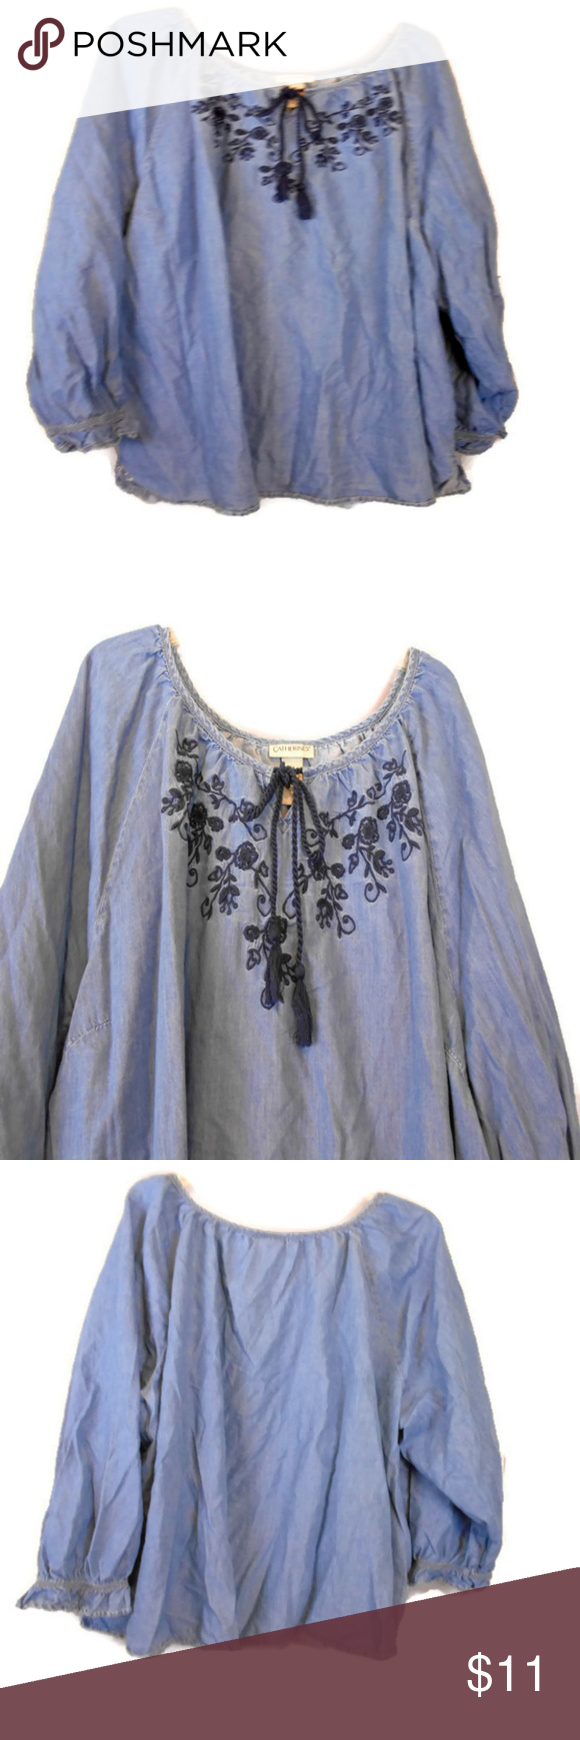 ca760073b83 Catherine s Floral Embroidered Peasant Top Pretty and Feminine Chambray  Denim Blouse